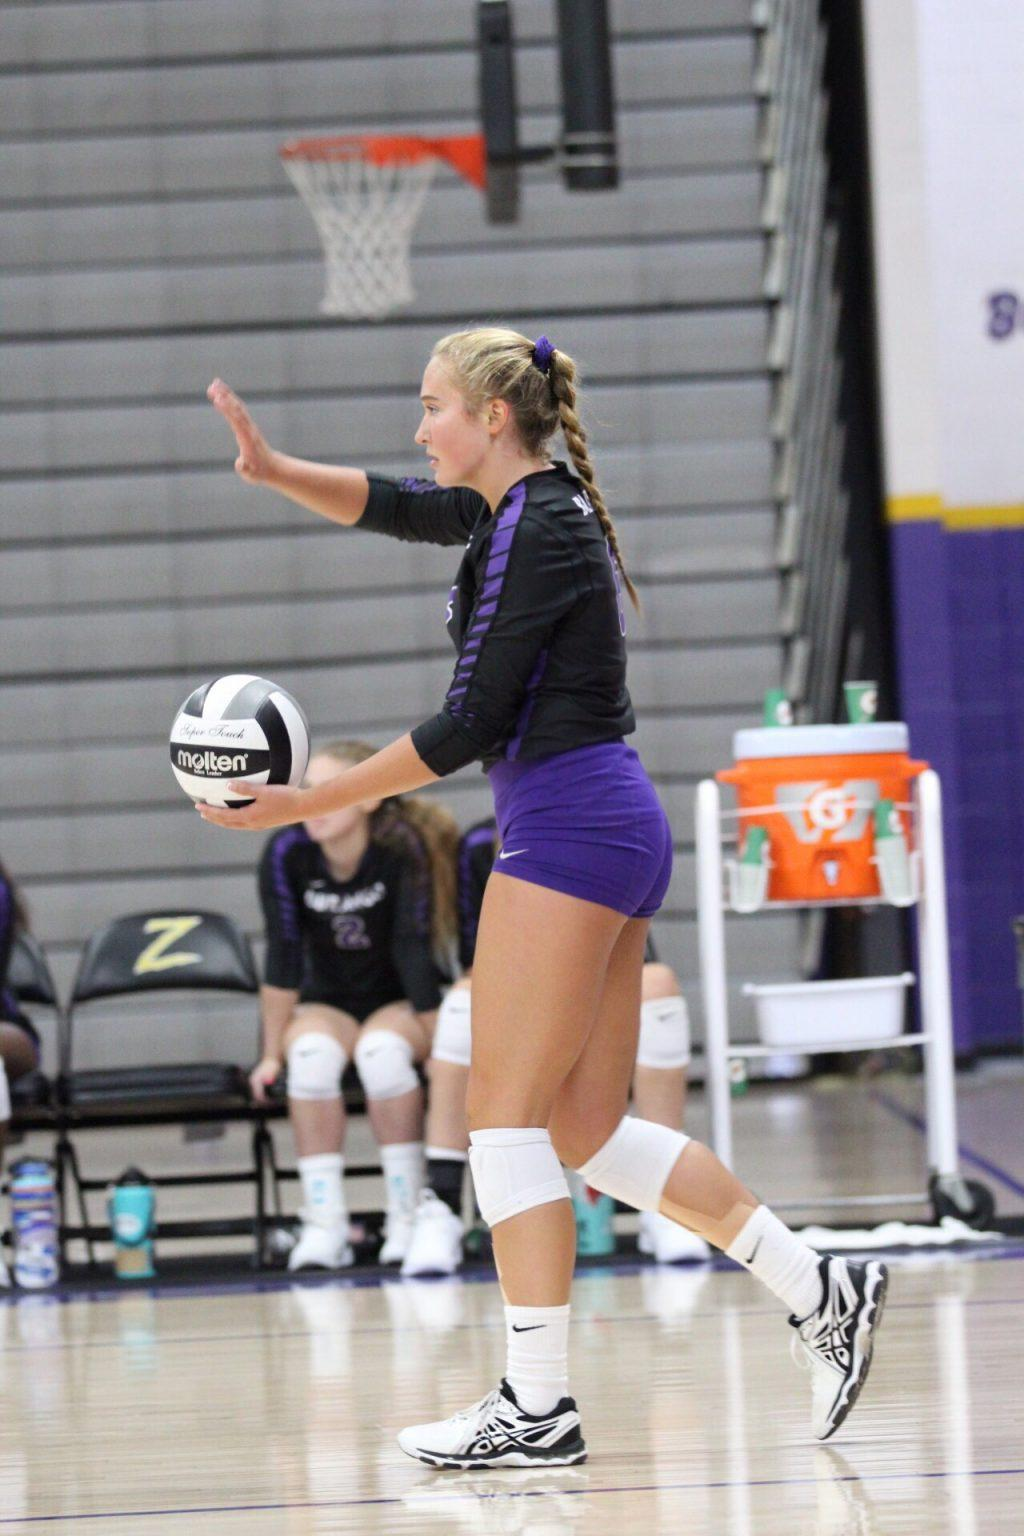 Steele prepares to serve in a game in the fall of 2019. Steele played in the defensive specialist and outside hitter positions during her high school career in Henderson, Nevada. Photo courtesy of Kennedi Steele